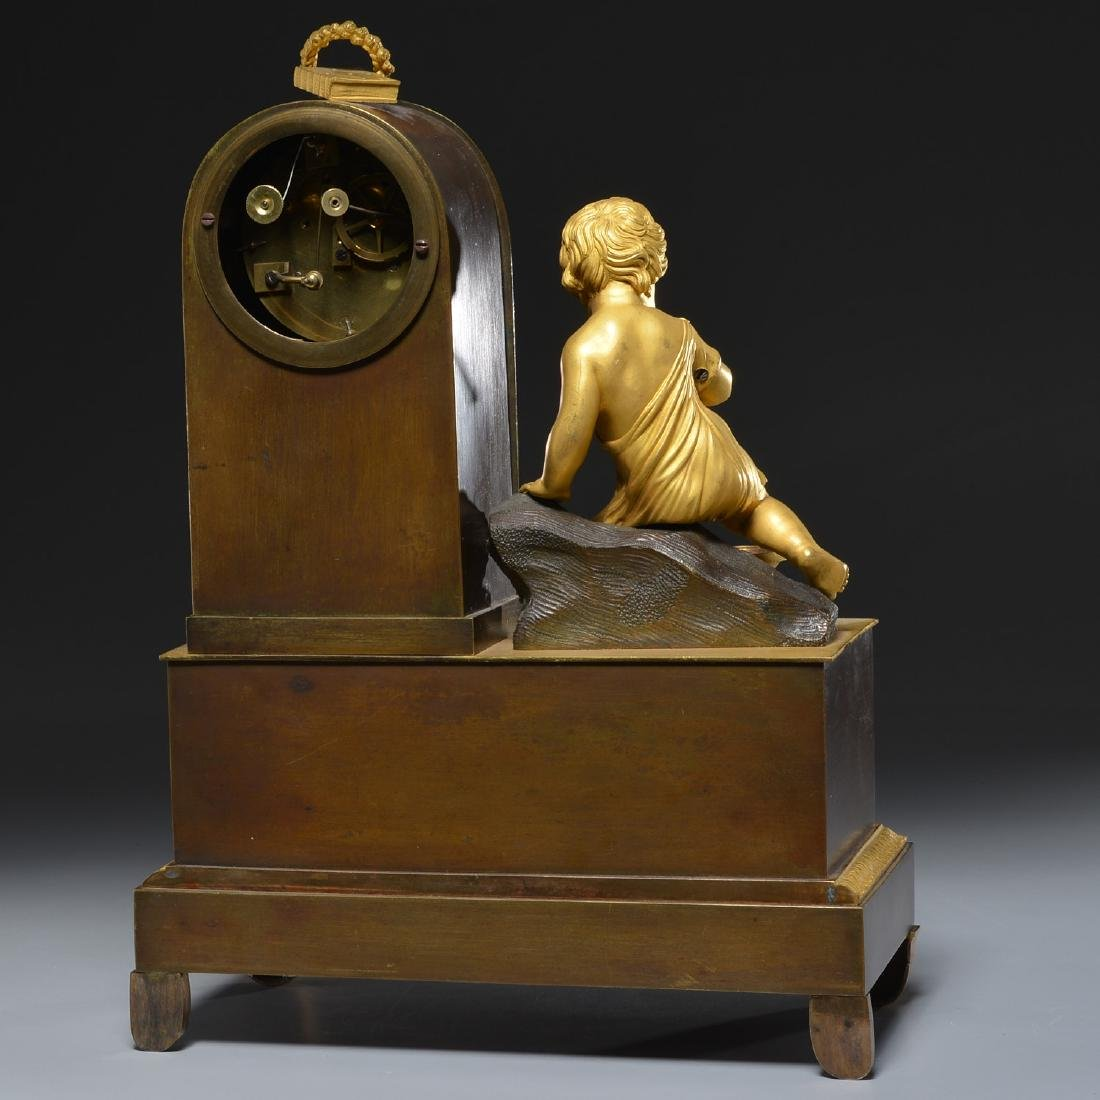 Charles X bronze animated fountain mantel clock - 7